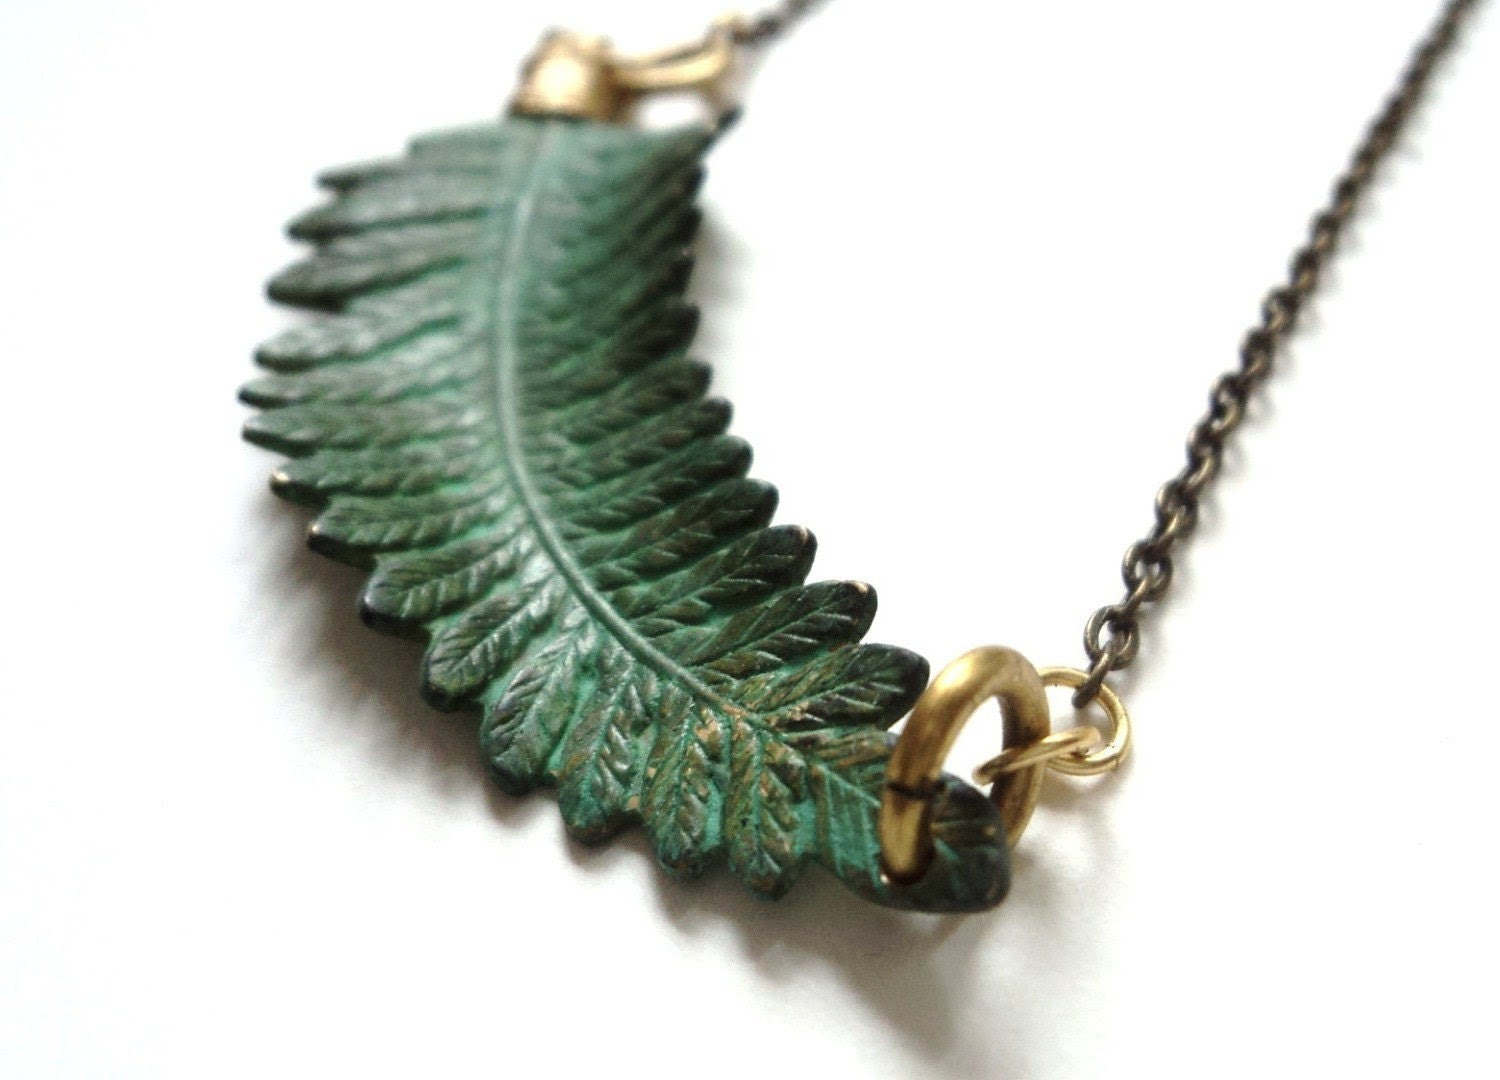 Necklace, Fern, Verdigris, Green, Nature, Woodland - SimoneSutcliffe